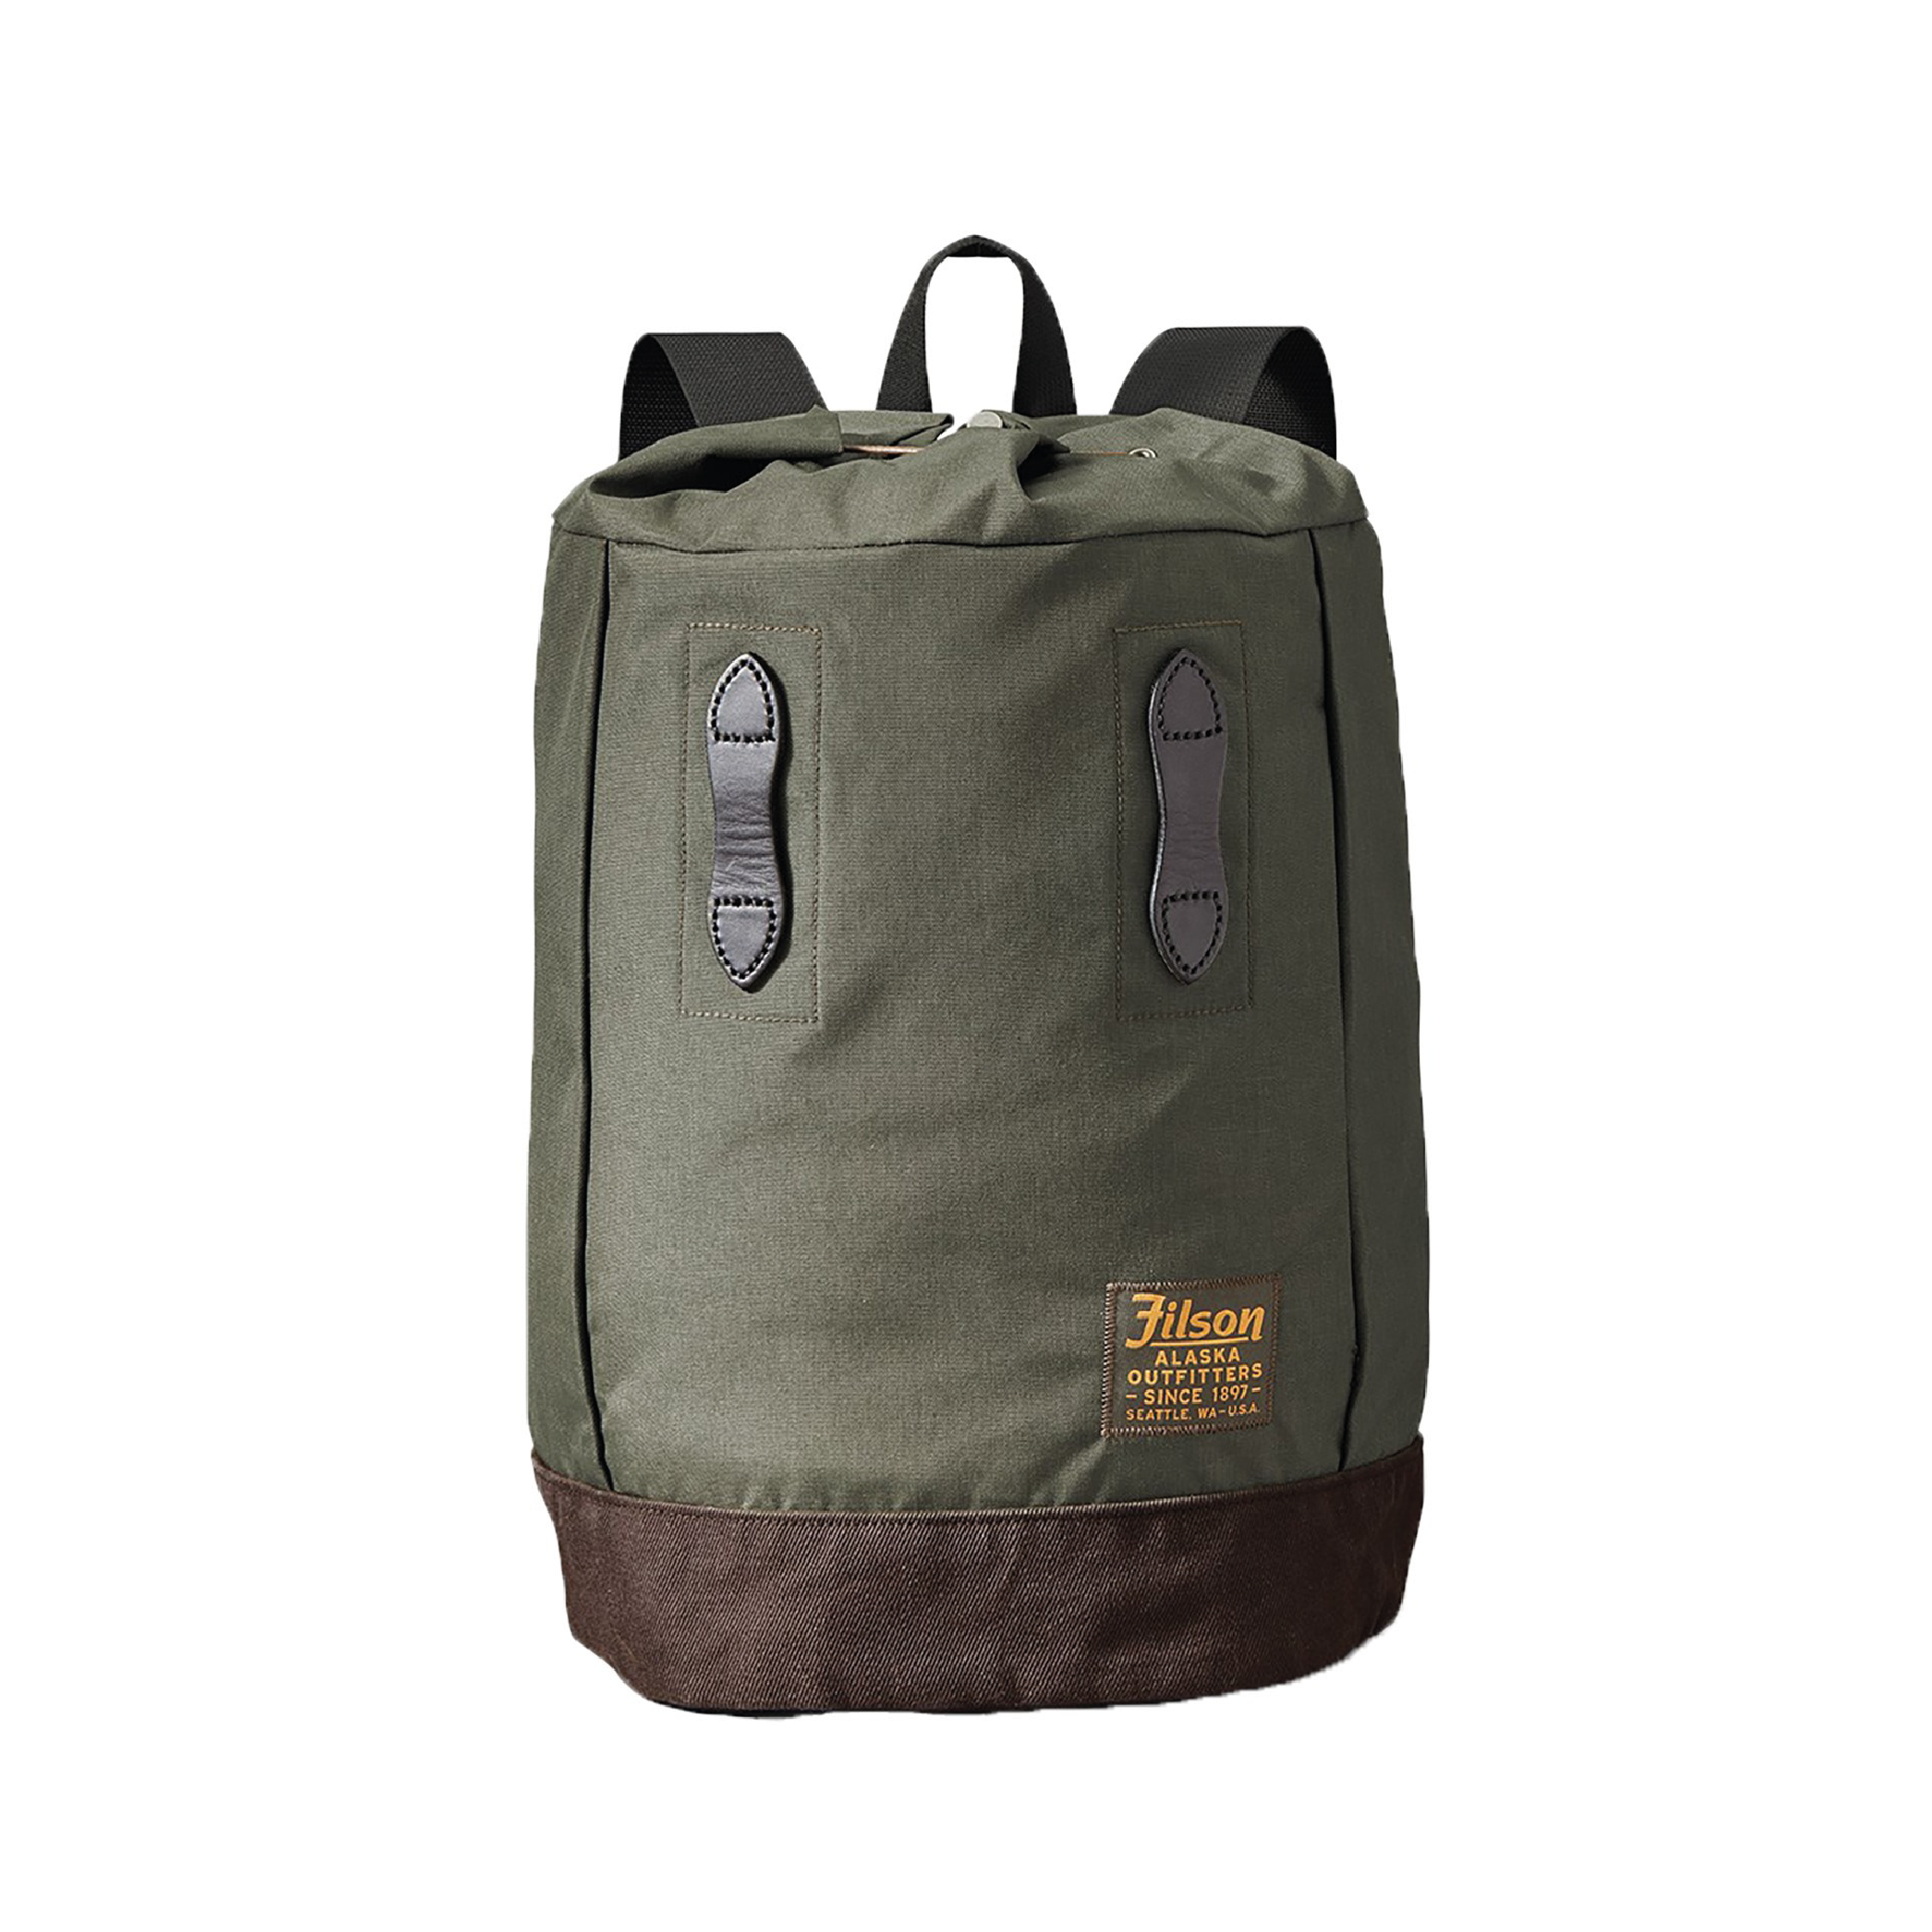 Green Filson Daypack.png